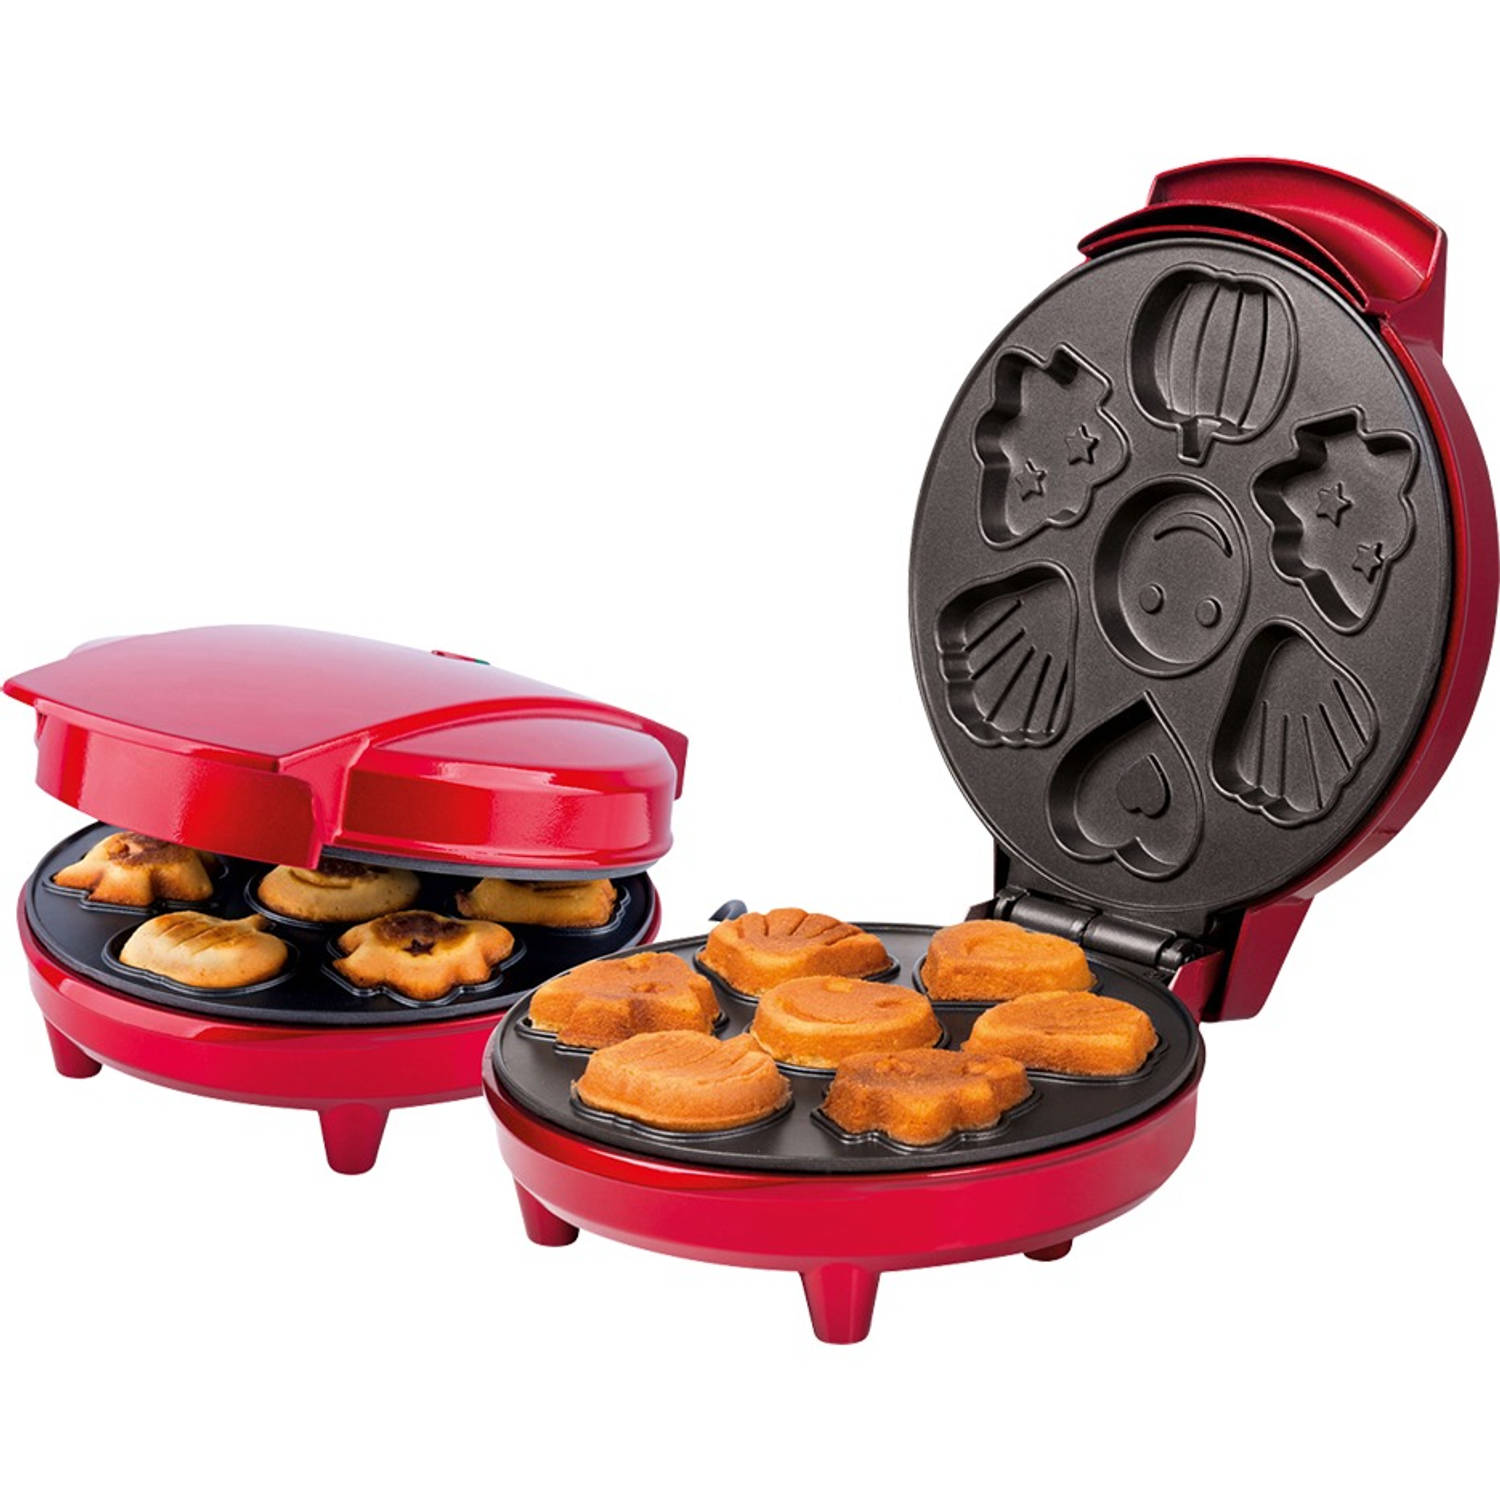 Trebs 99257 cookiemaker